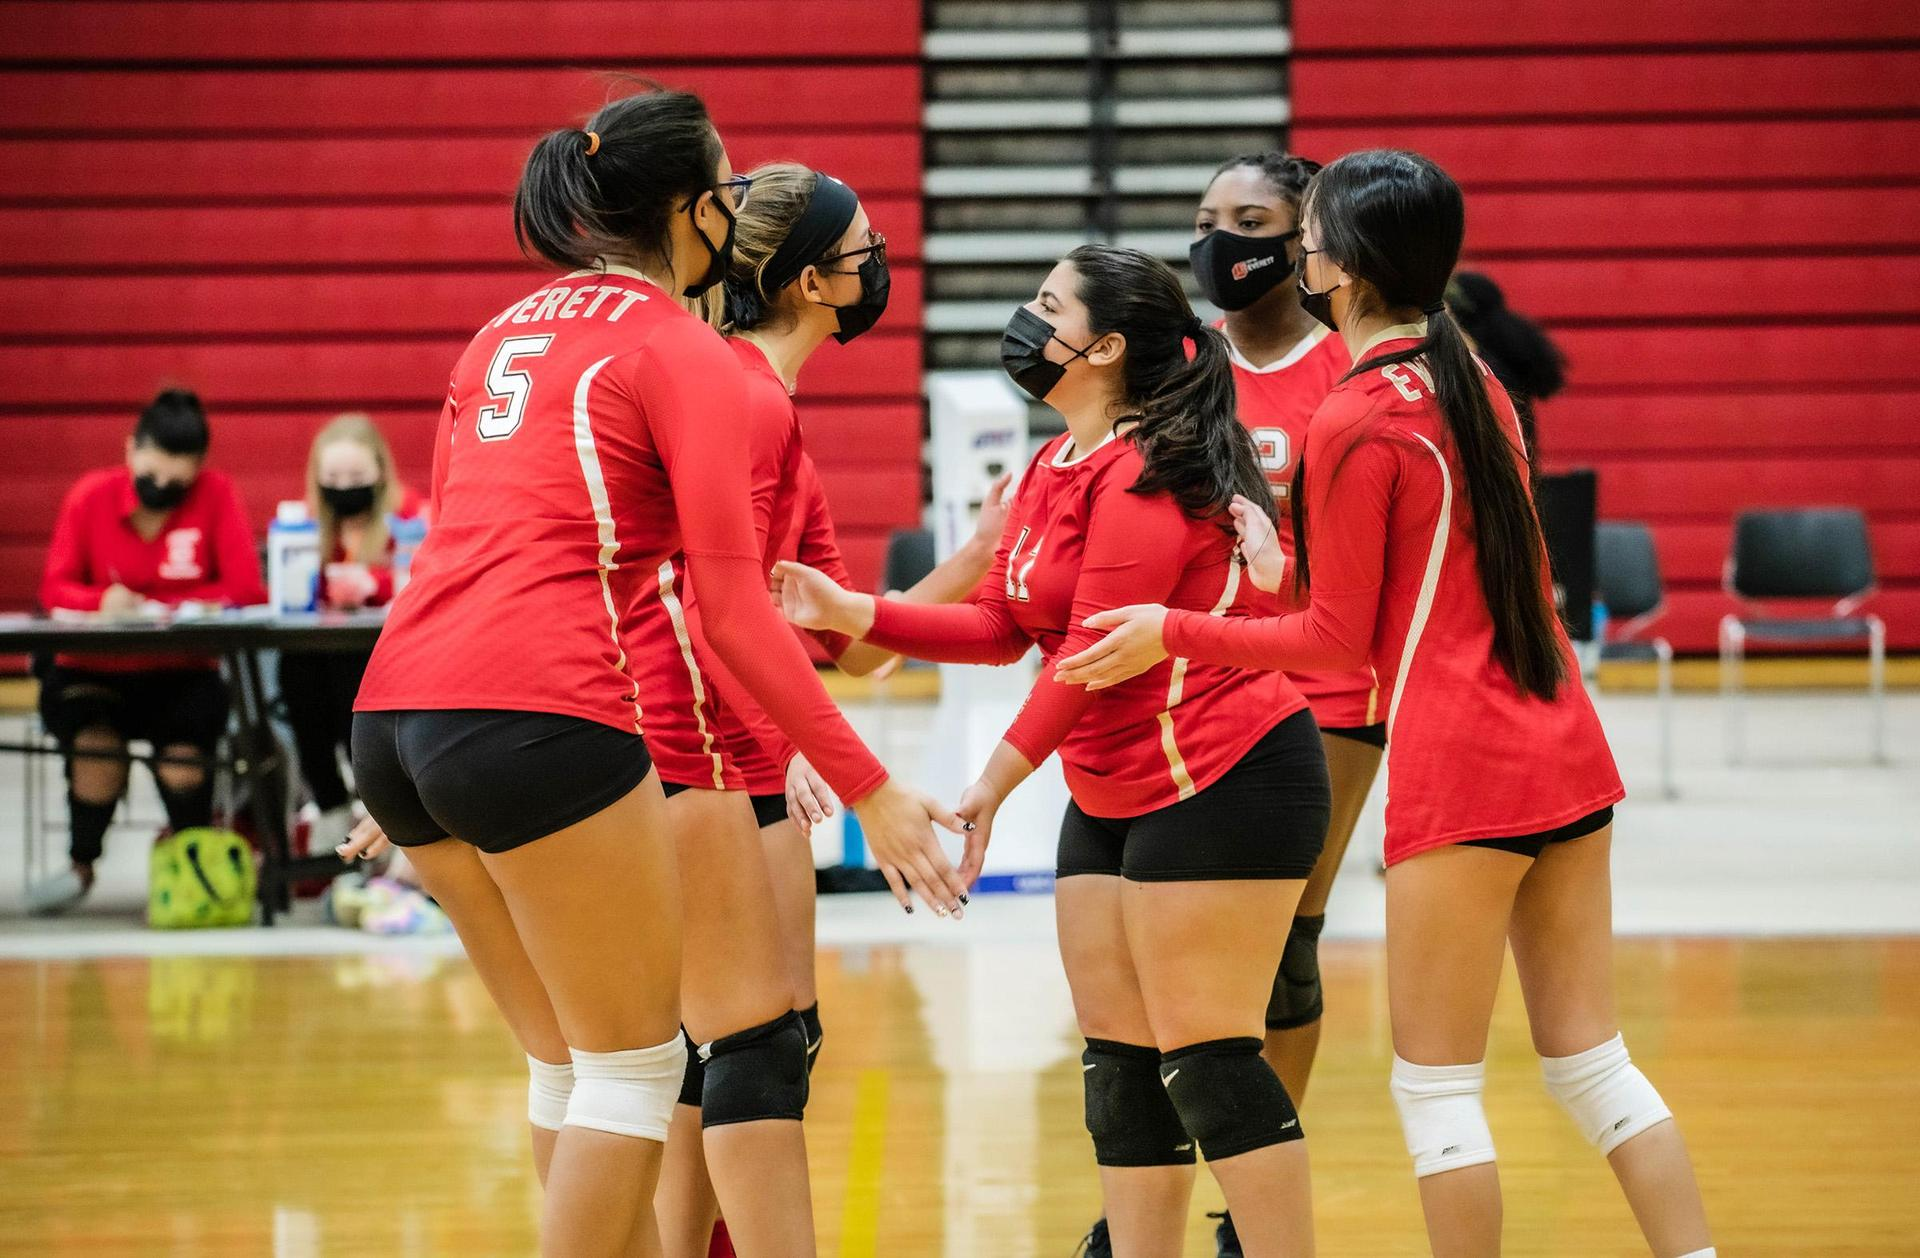 Volleyball players huddle up